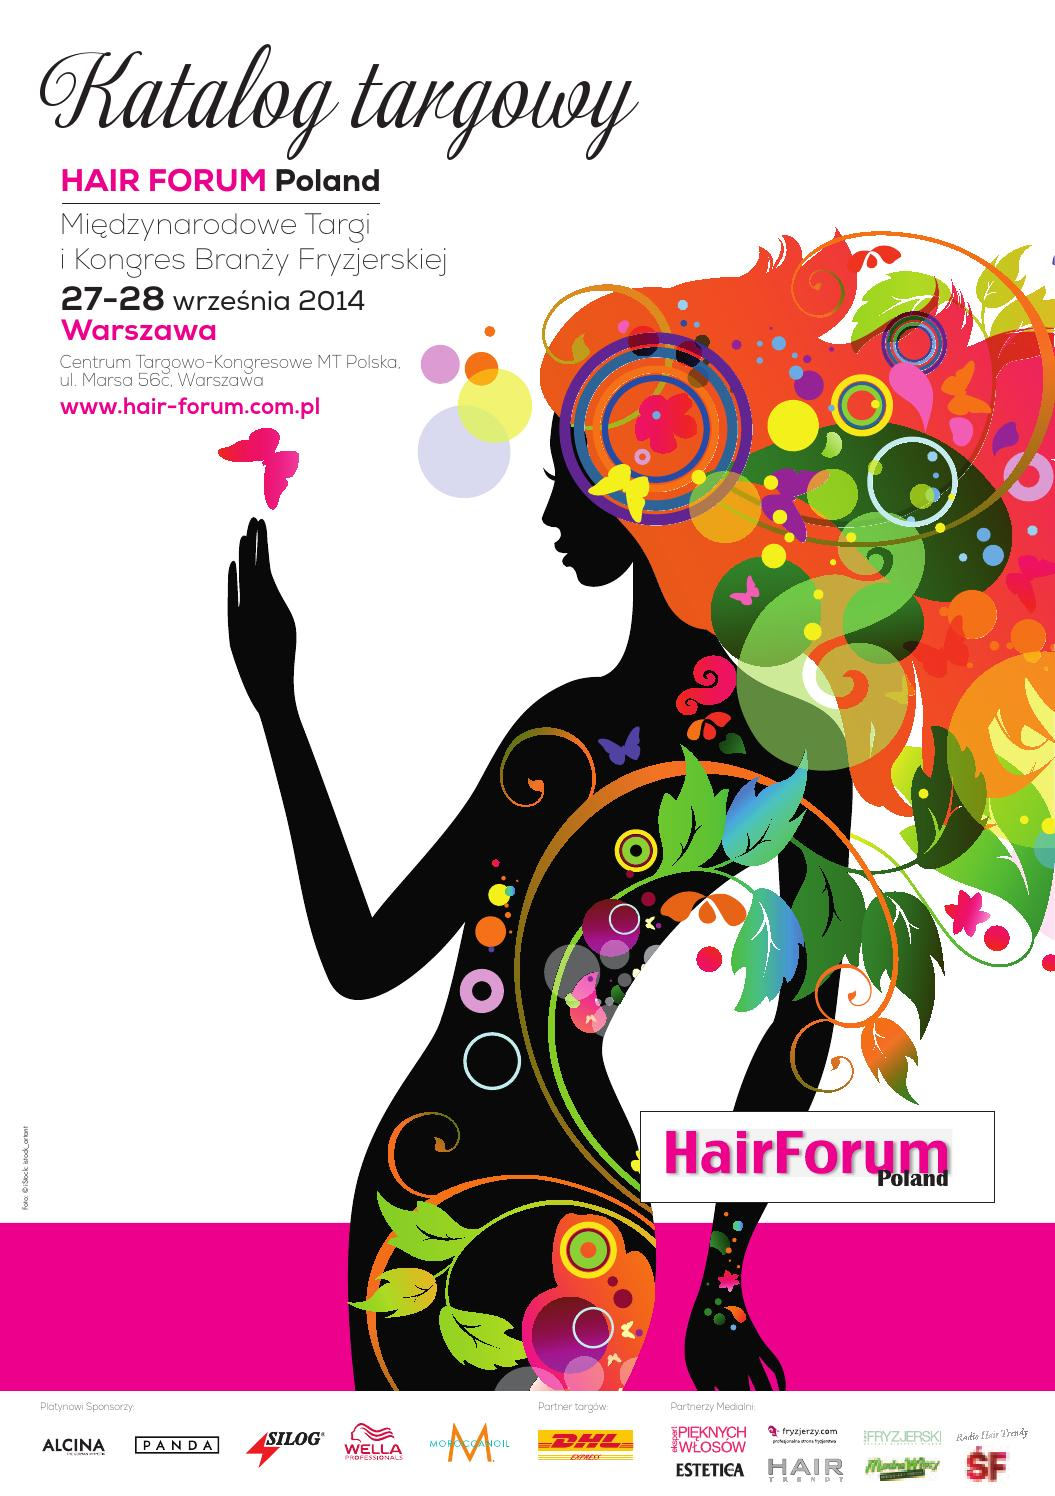 Katalog Hair Forum Poland 2014 Warszawa By Kamila Jadwicka Issuu